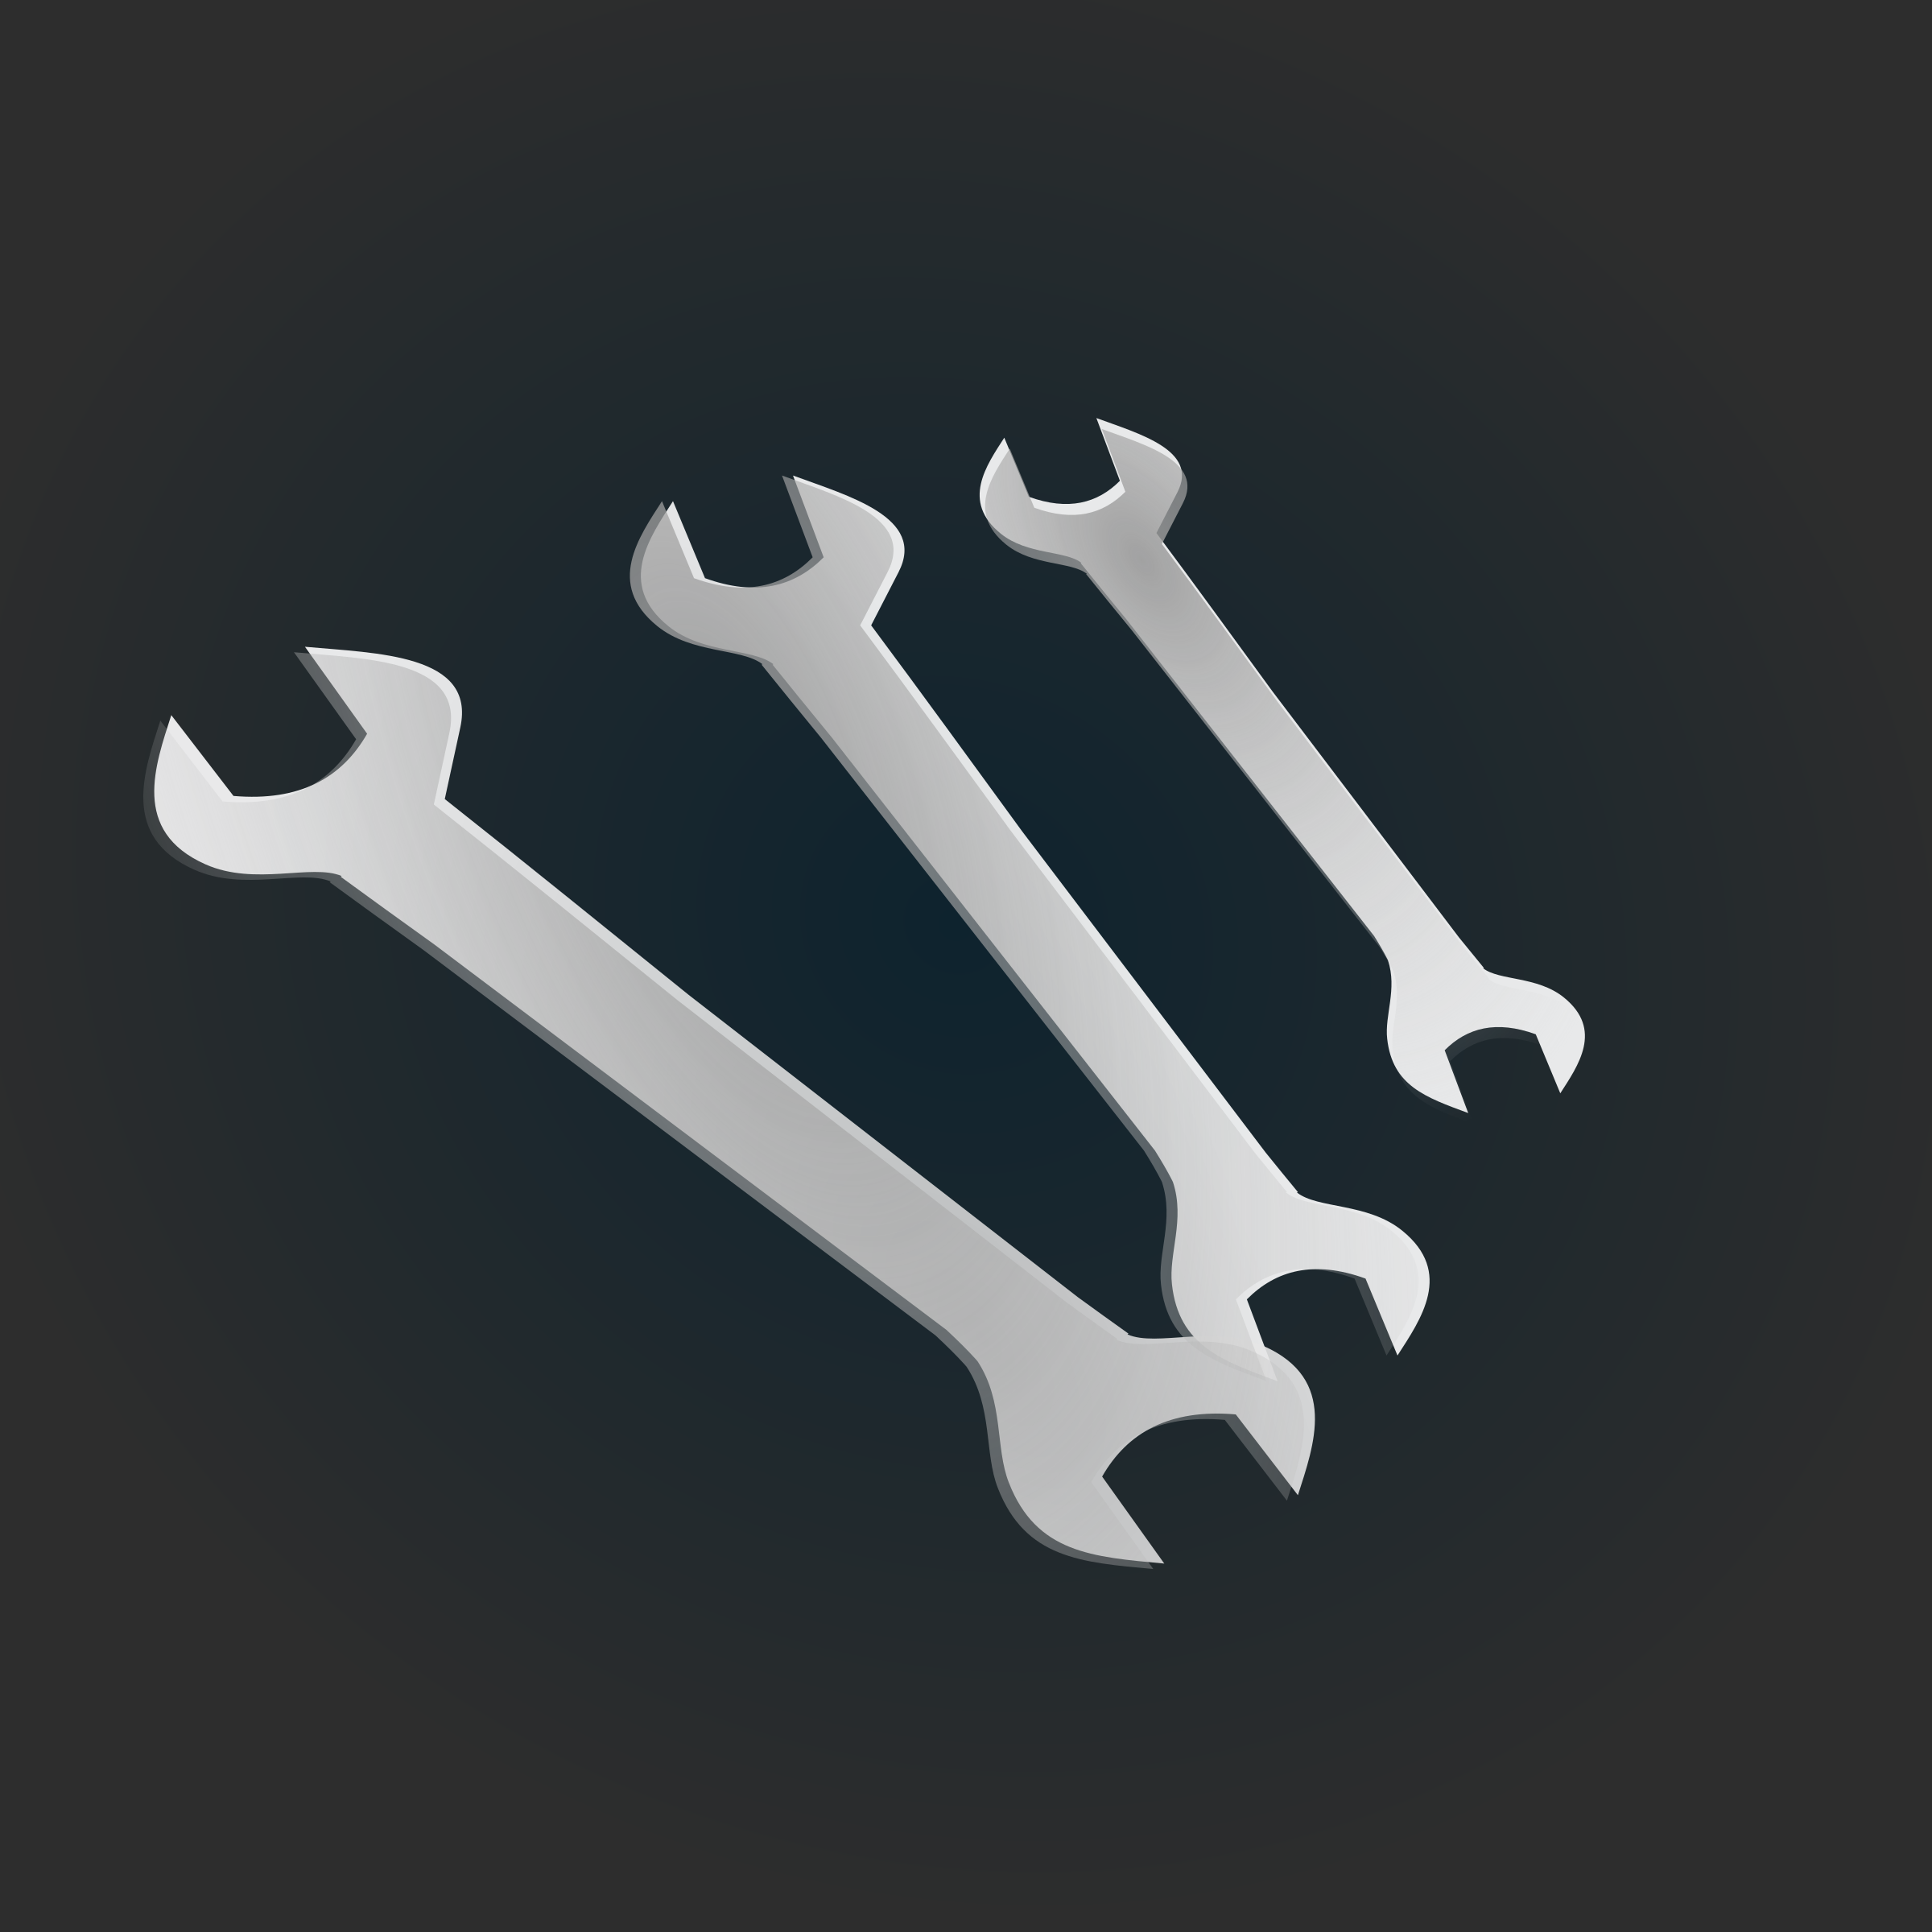 spanners icon by netalloy